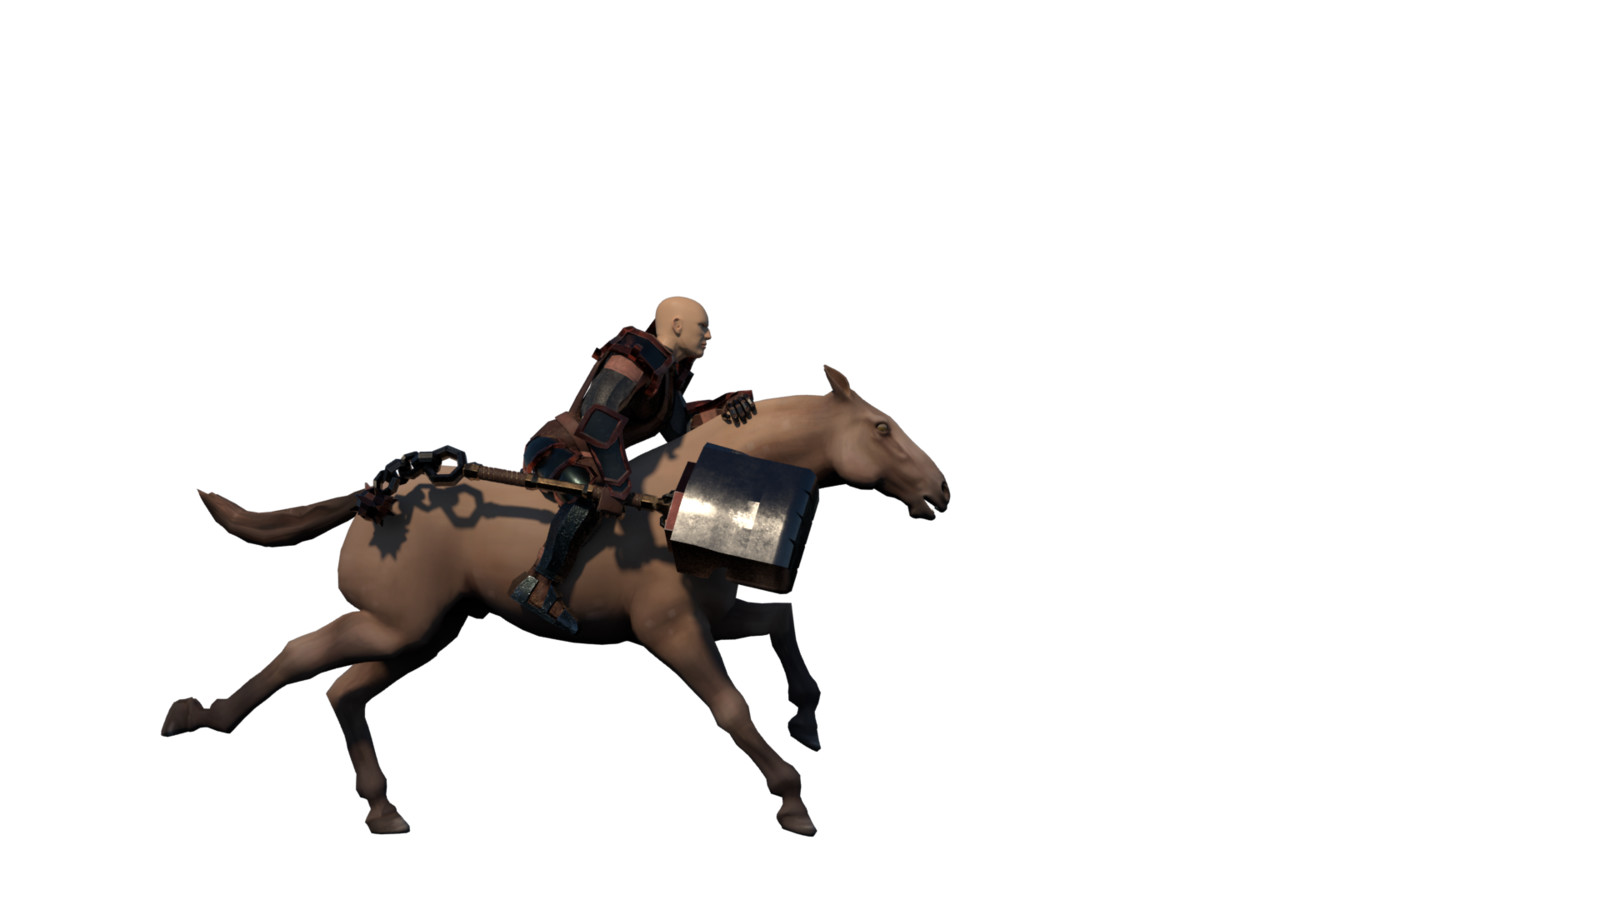 Cleric riding his horse (from a distance)